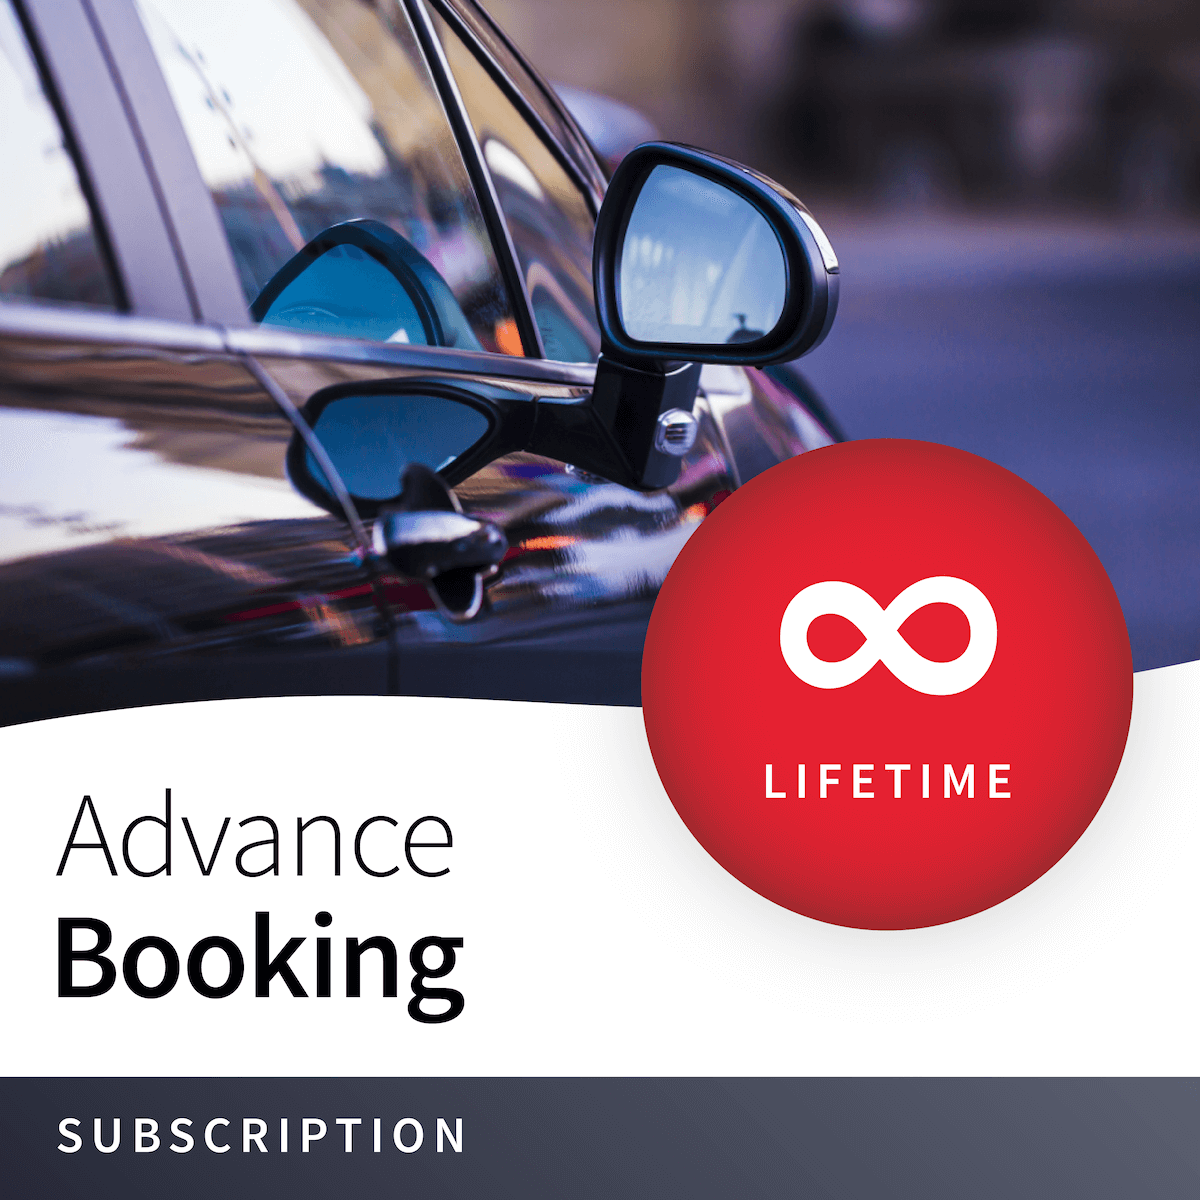 Priority Advance Booking – Lifetime 5